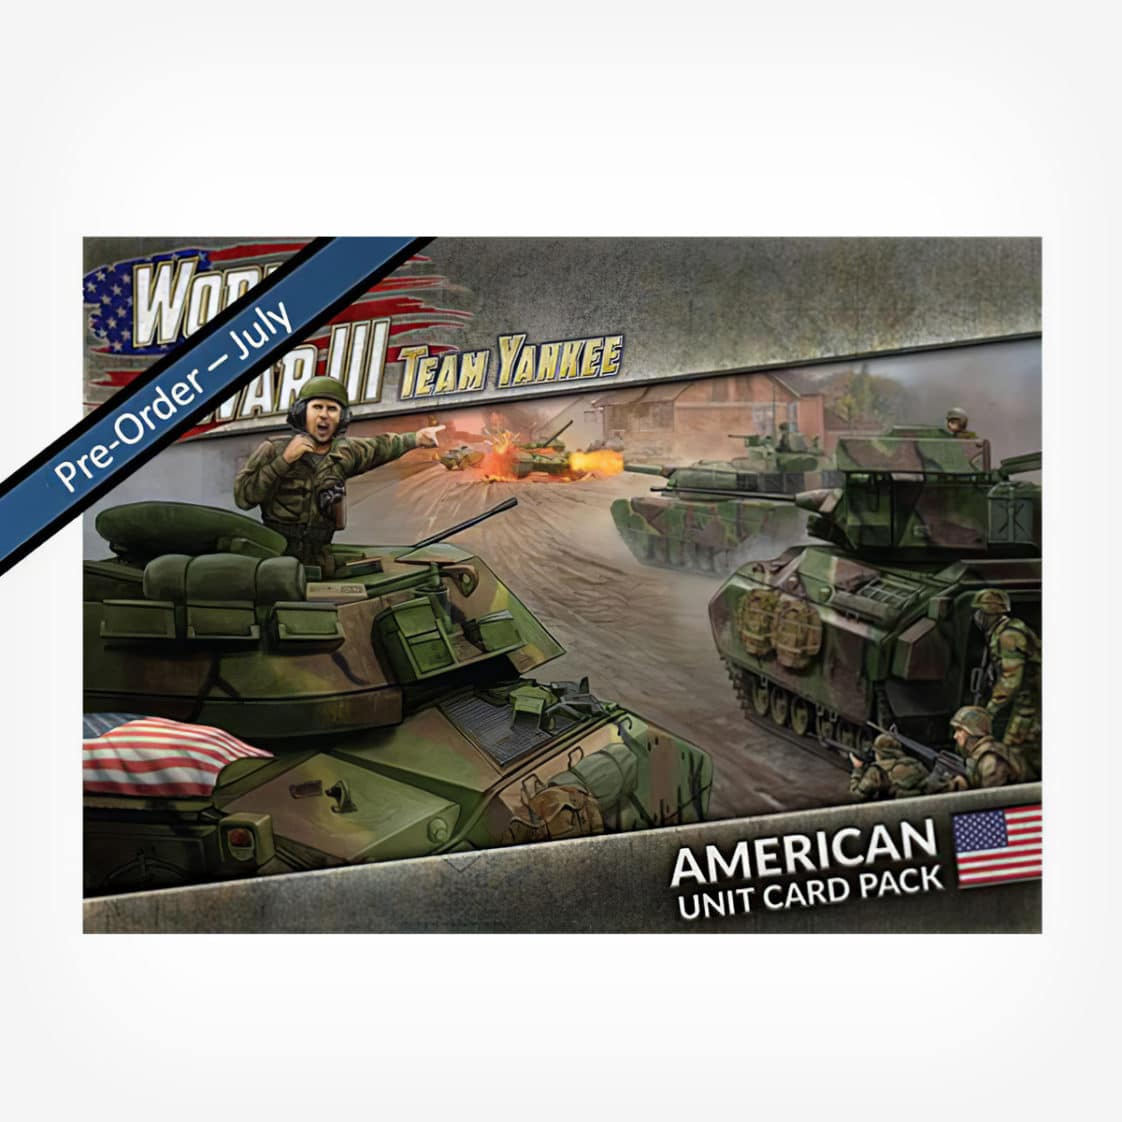 WWIII: American Unit Card Pack